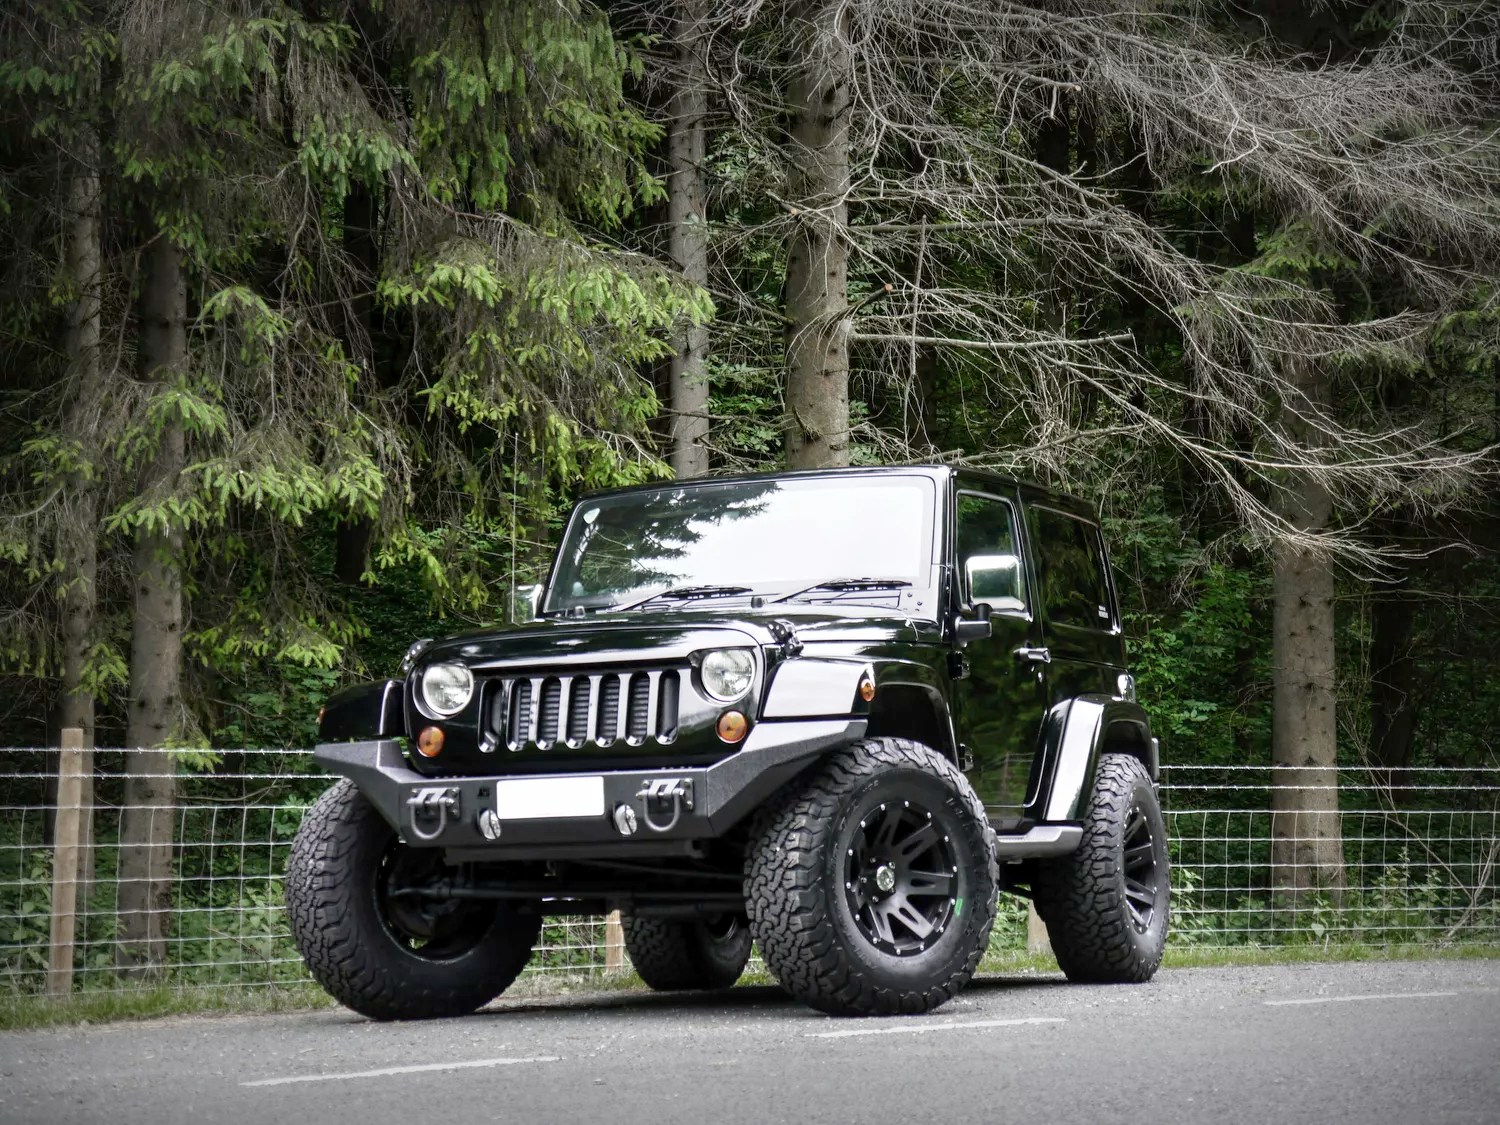 hight resolution of showcase storm 9 2011 jeep wrangler 70th anniversary 2 door 2 8 crd